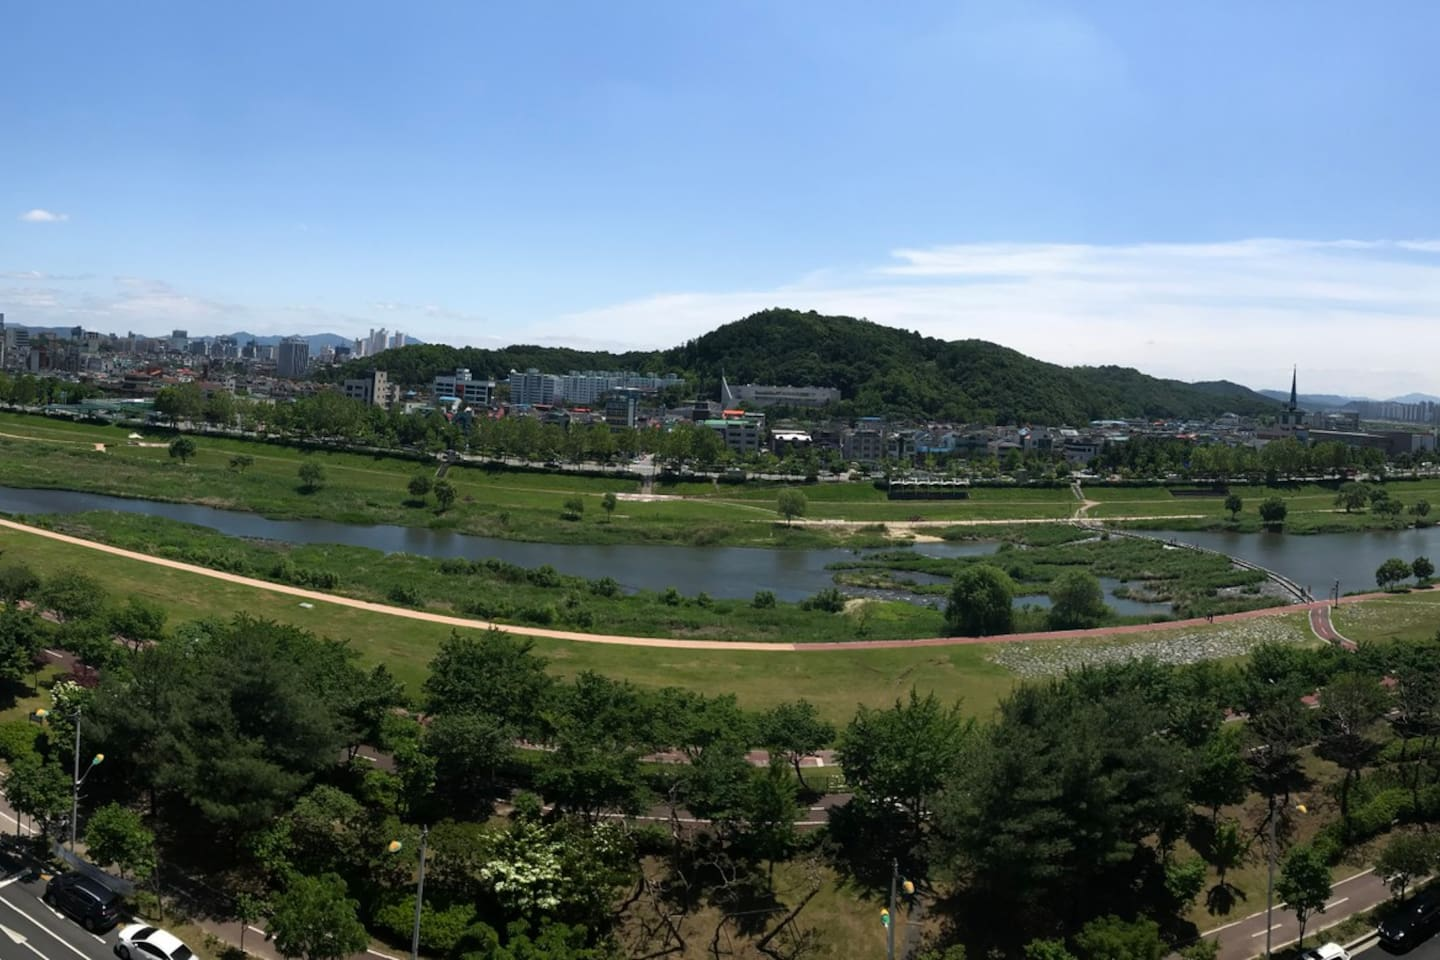 View from the balcony of the Gapcheon river